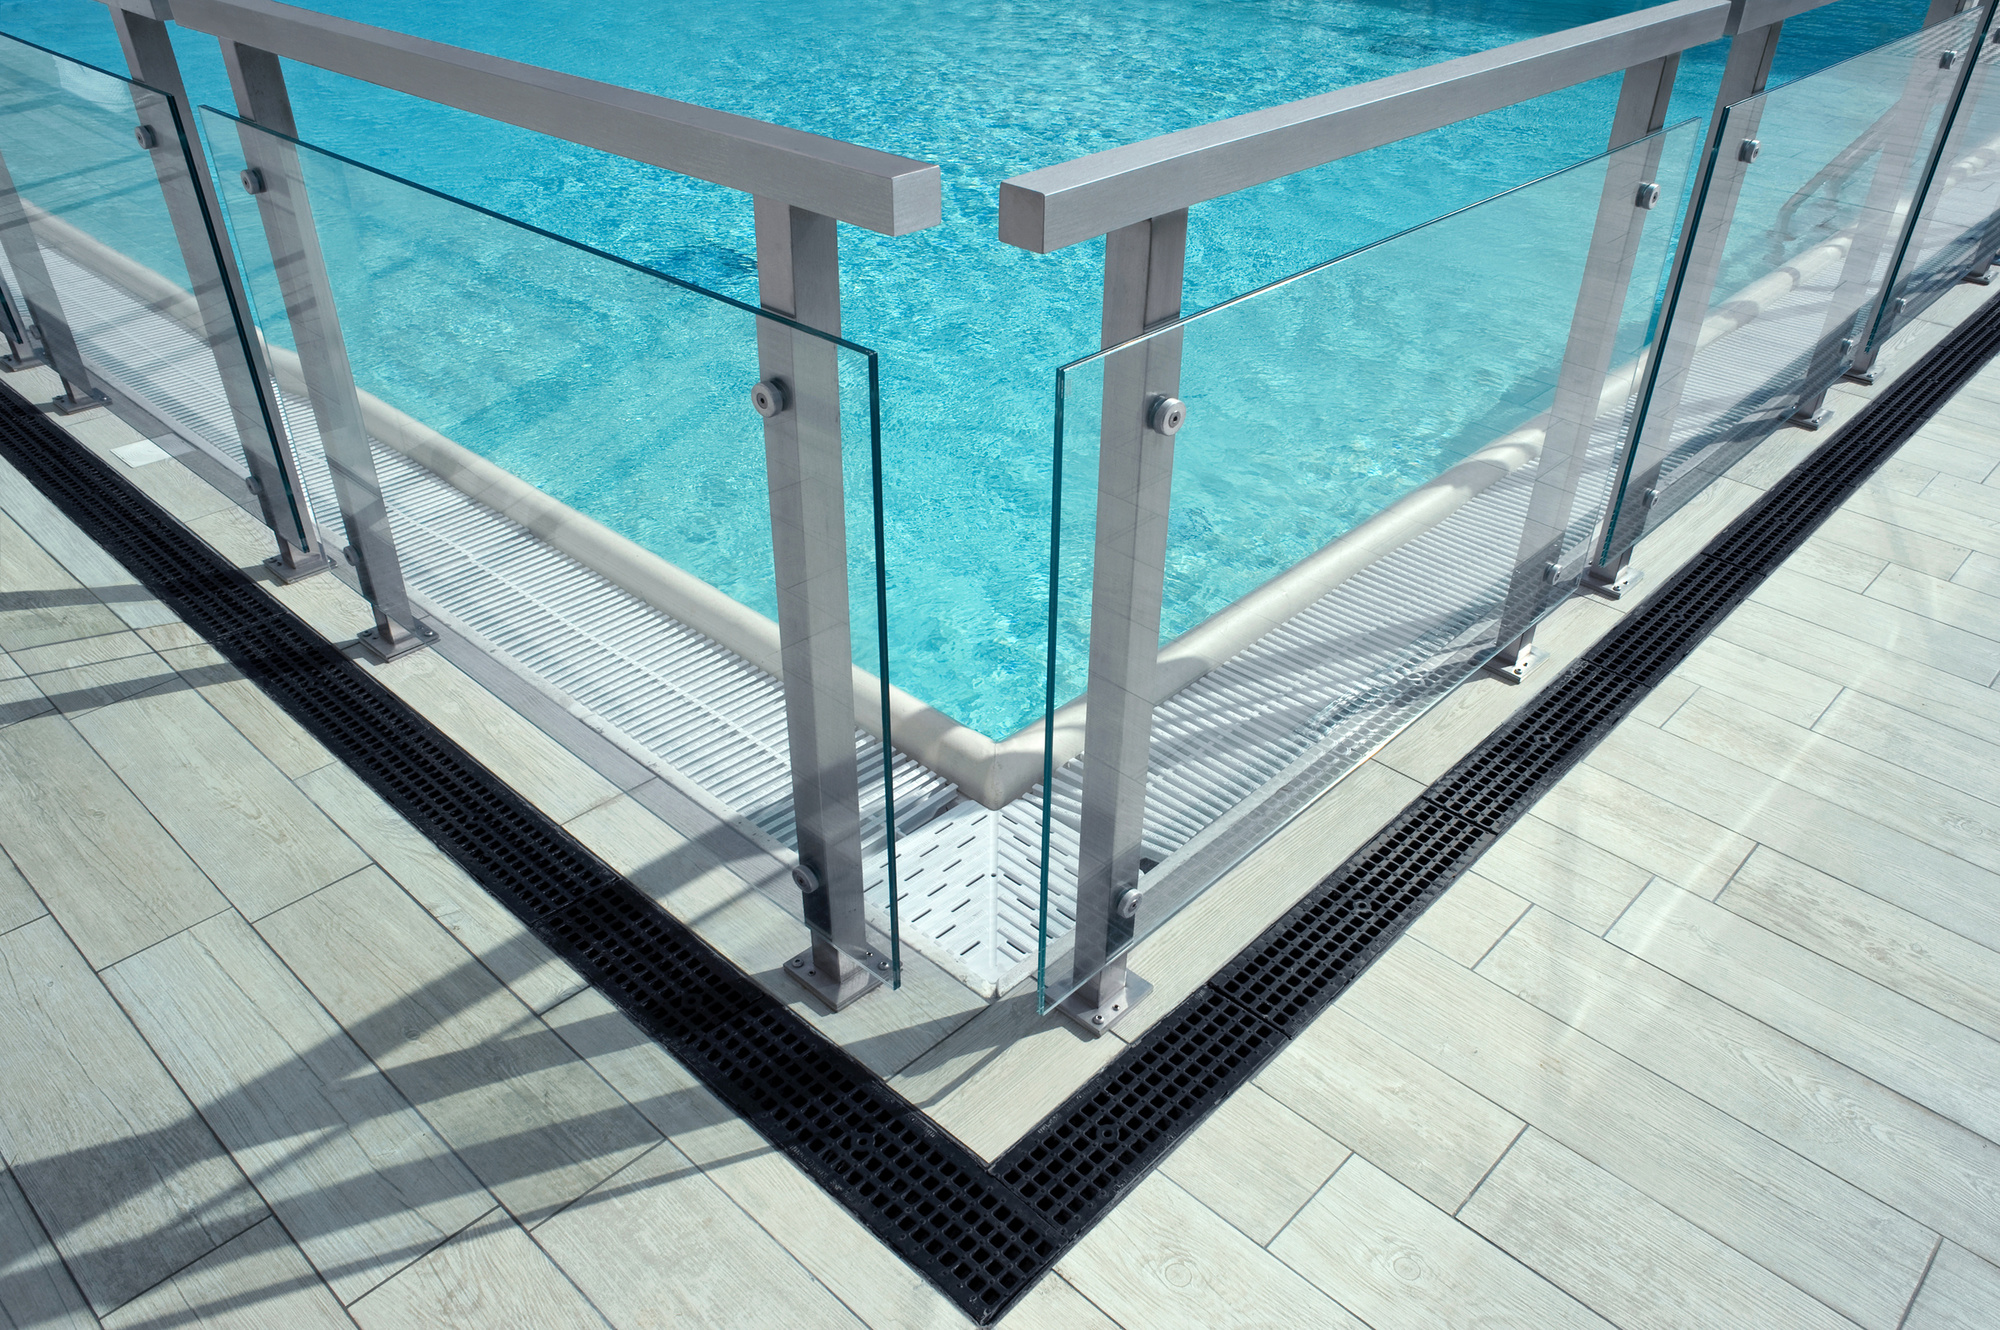 Swimming Pool Safety: 4 Things You Should Do to Make Your Pool Safe